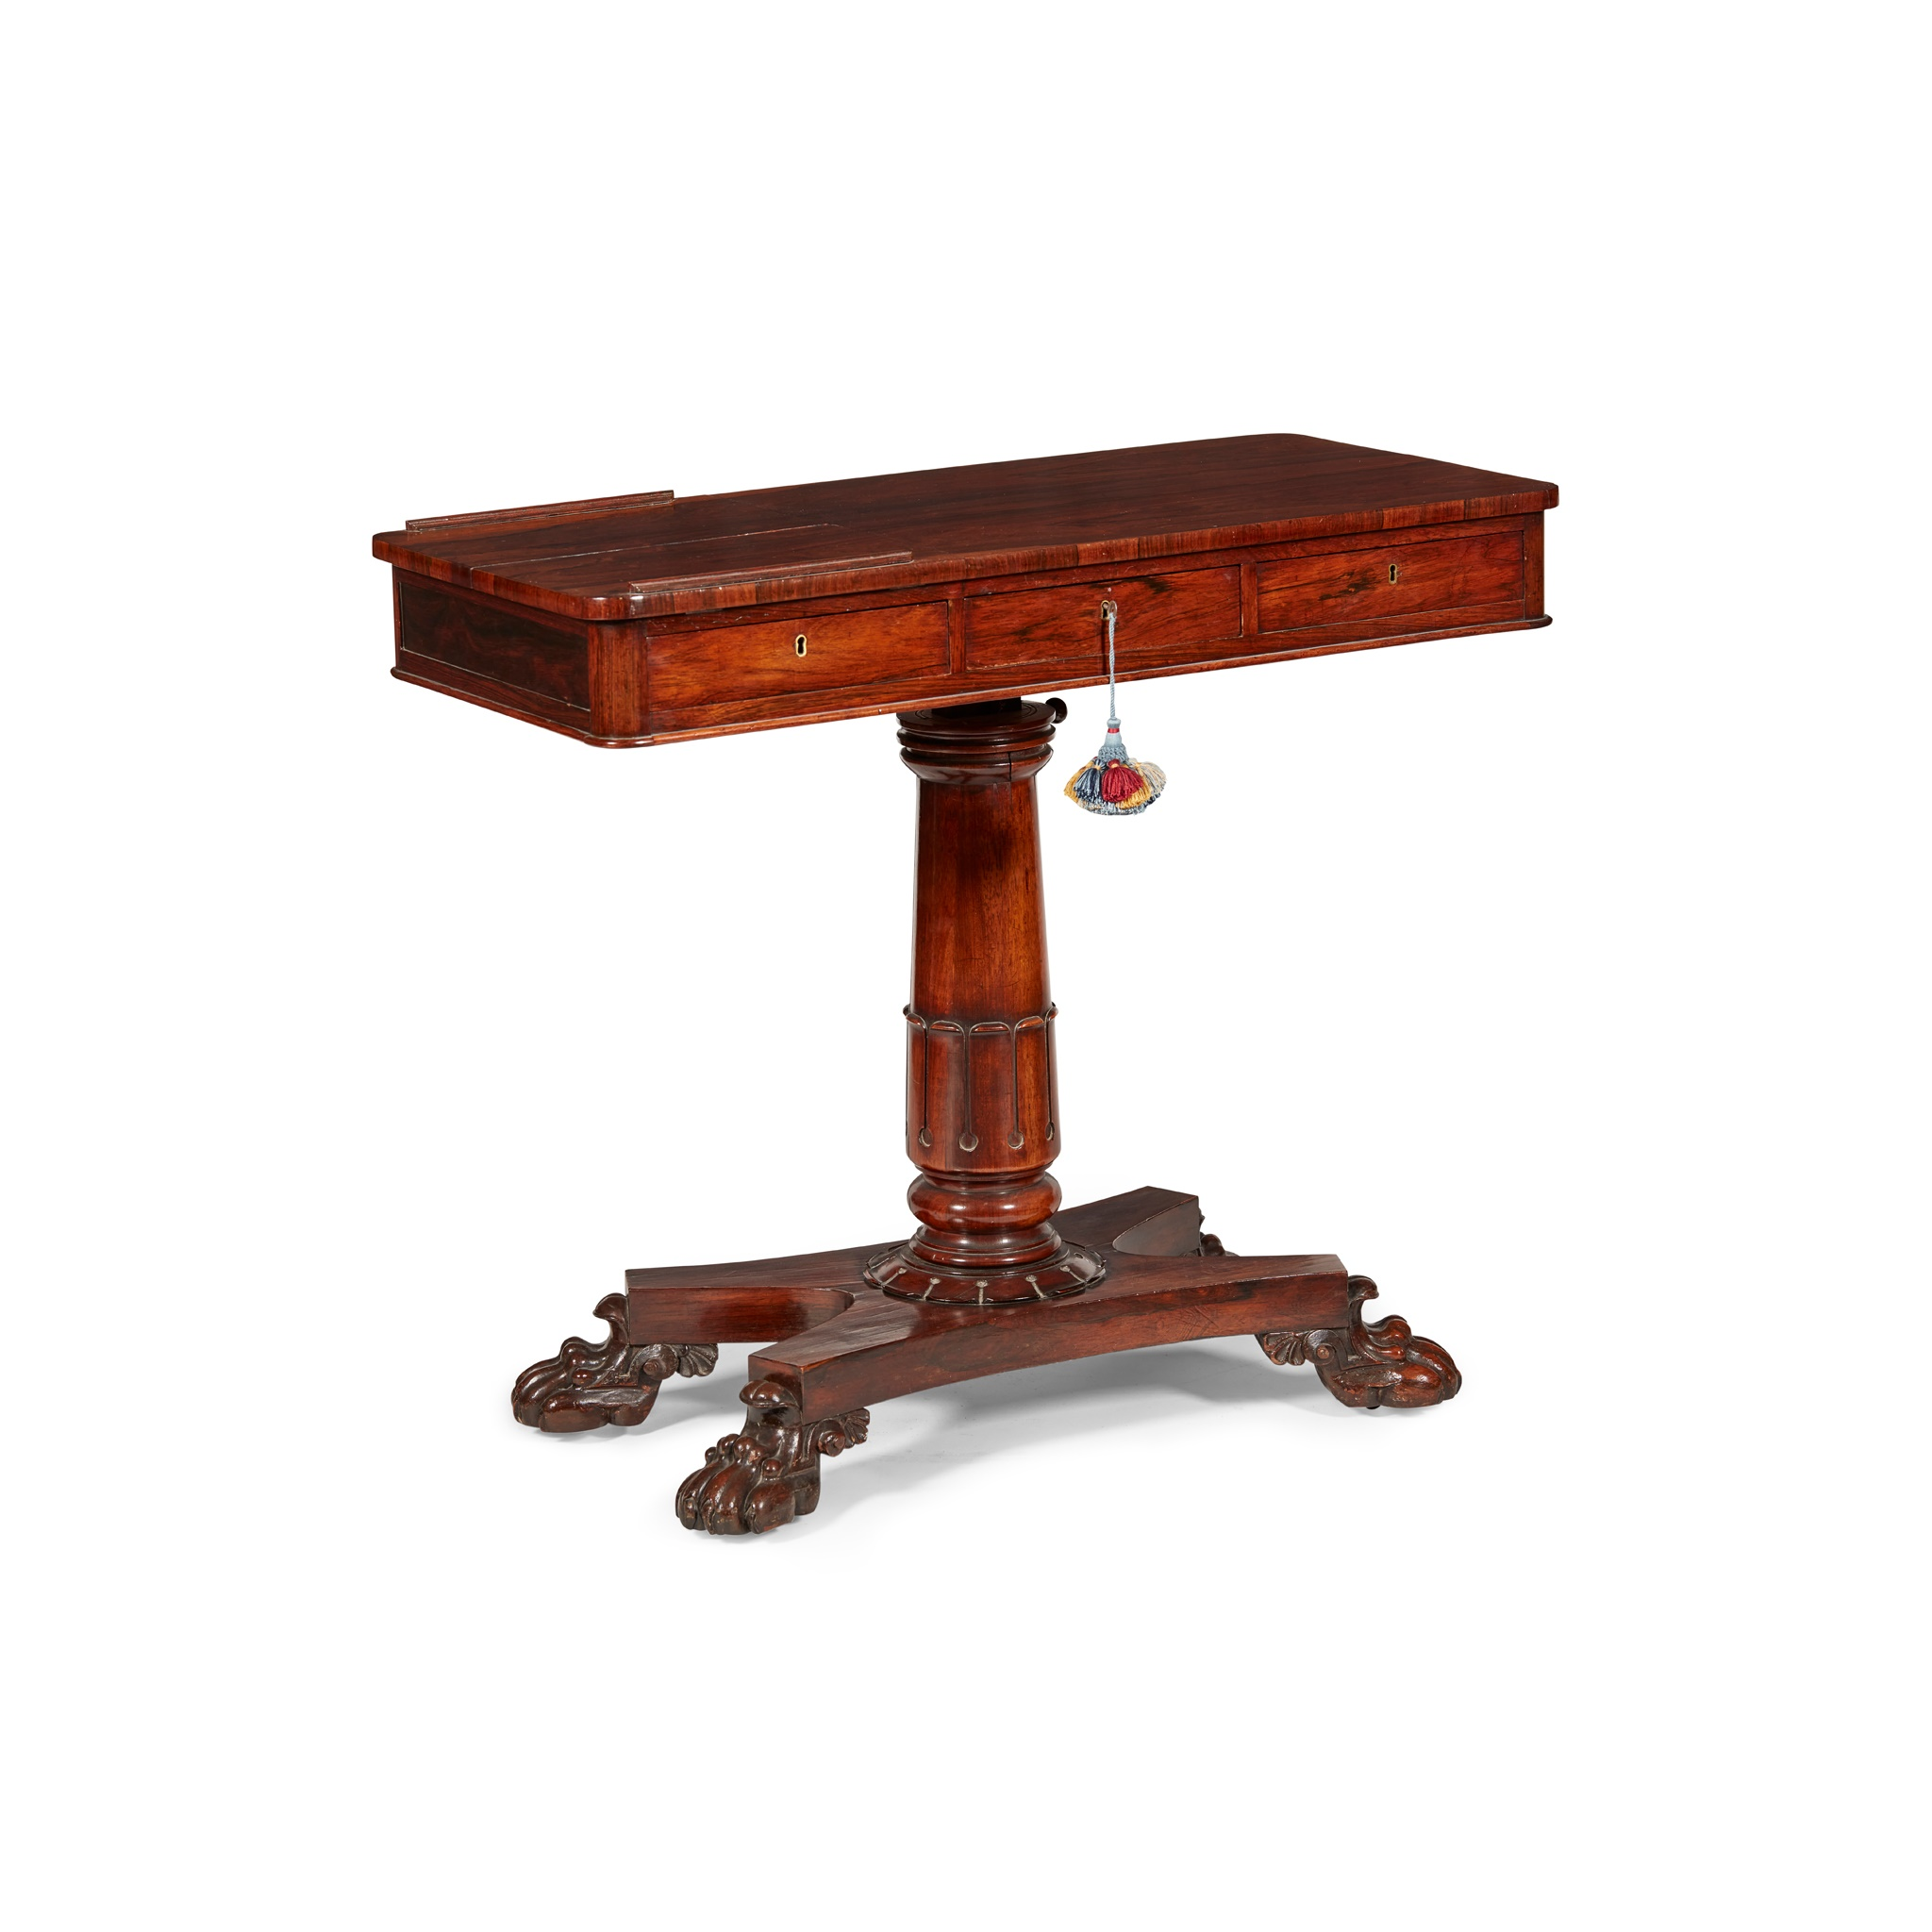 Y GEORGE IV ROSEWOOD READING TABLE EARLY 19TH CENTURY - Image 2 of 4